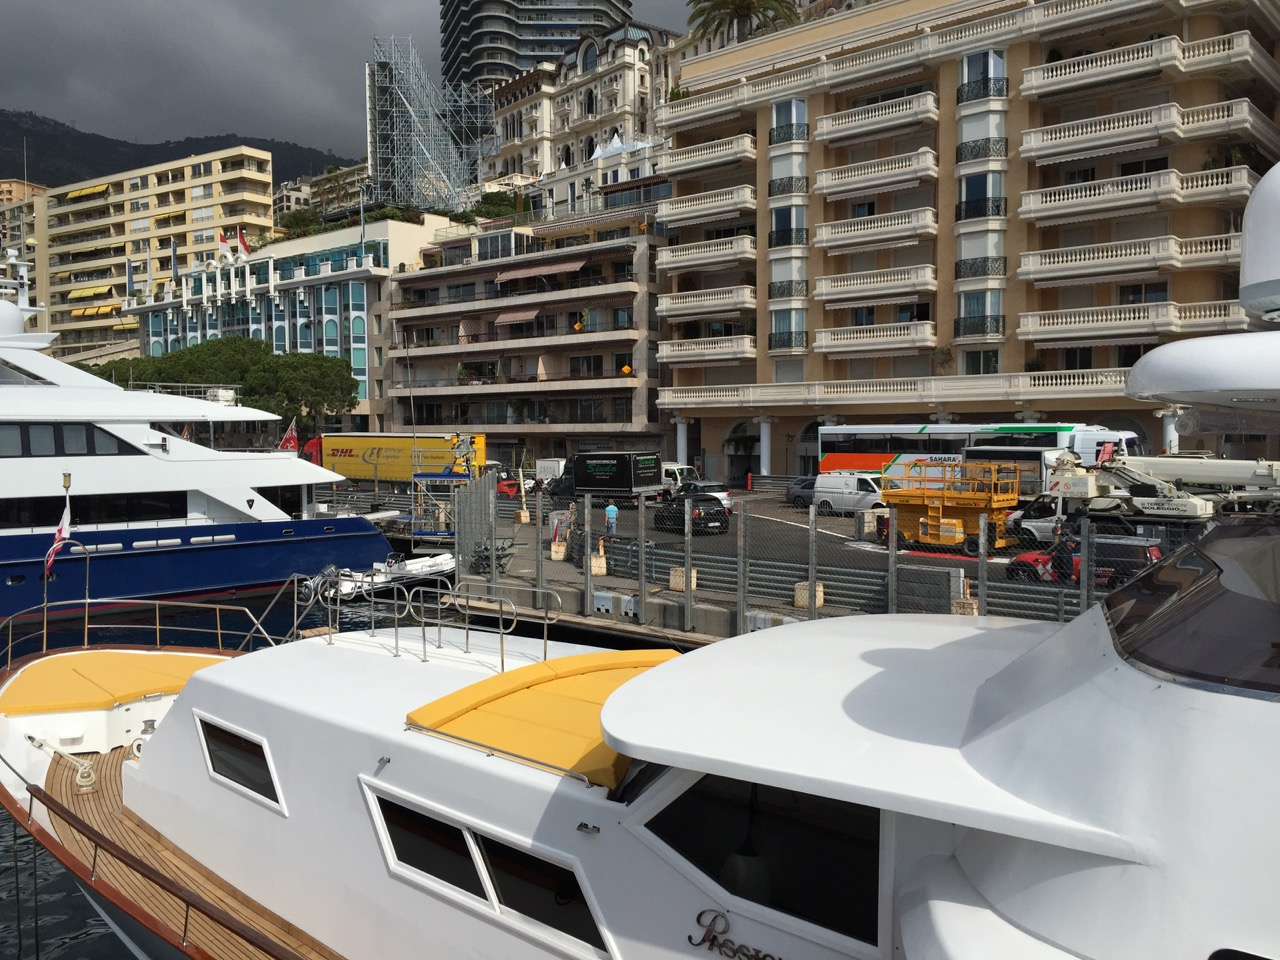 The Chicane in Monaco after the tunnel